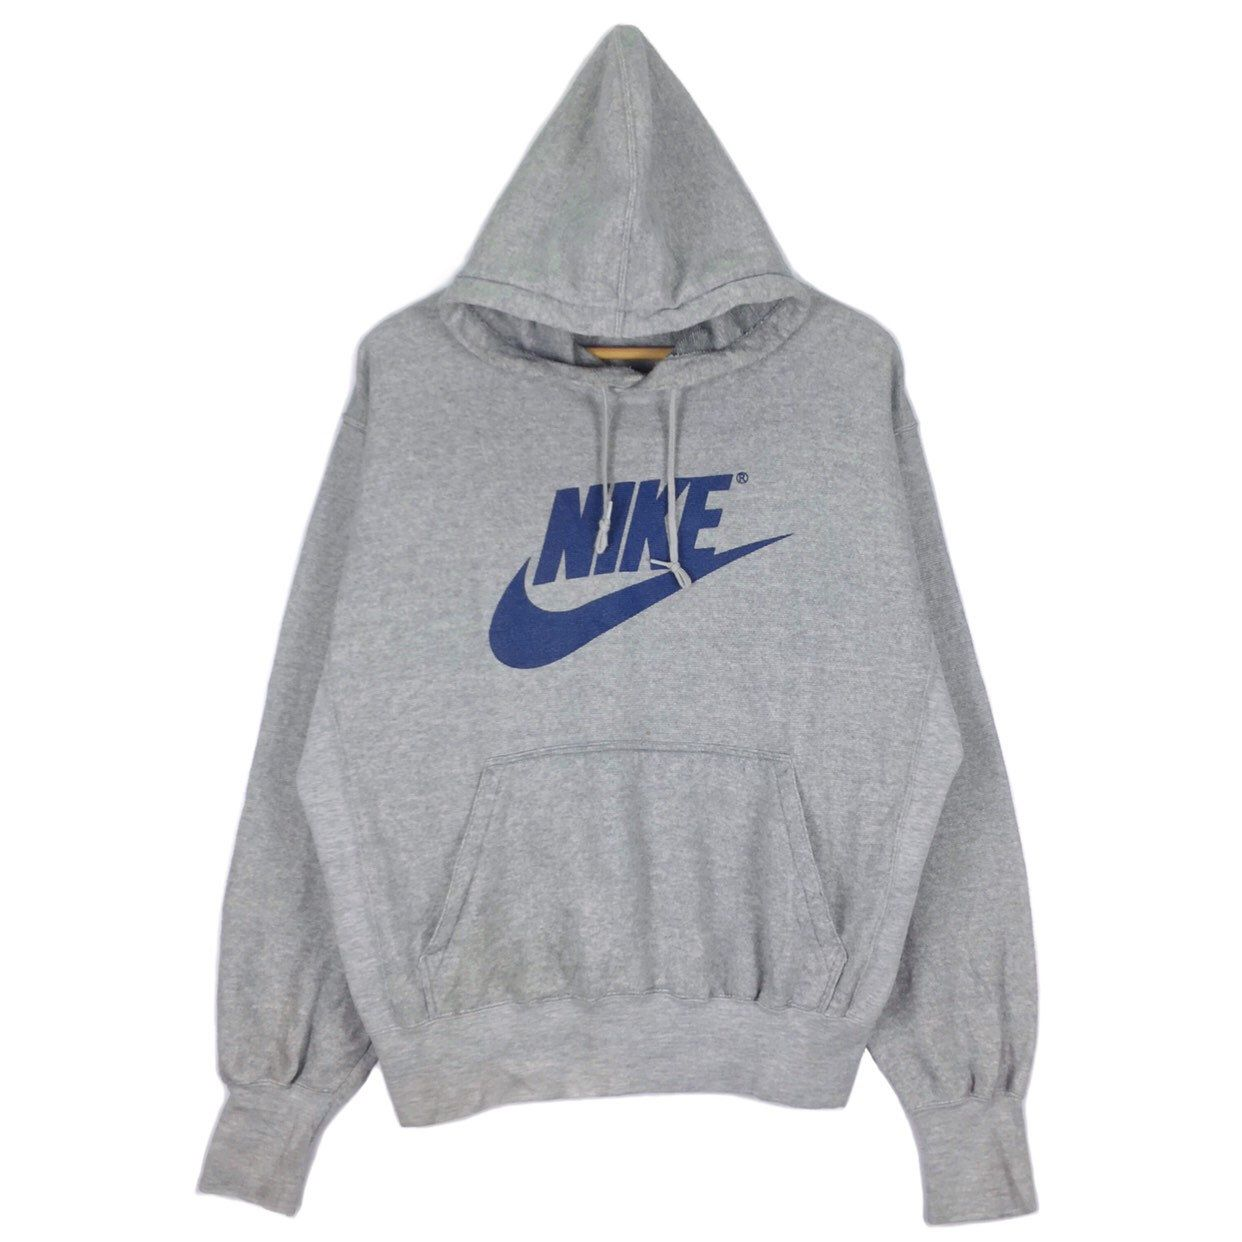 Excited To Share This Item From My Etsy Shop Vintage 90s Nike Swoosh Hoodie Sweatshirt Big Logo Spellout Grey Tag Nike Outfits Vintage Nike Hoodies For Sale